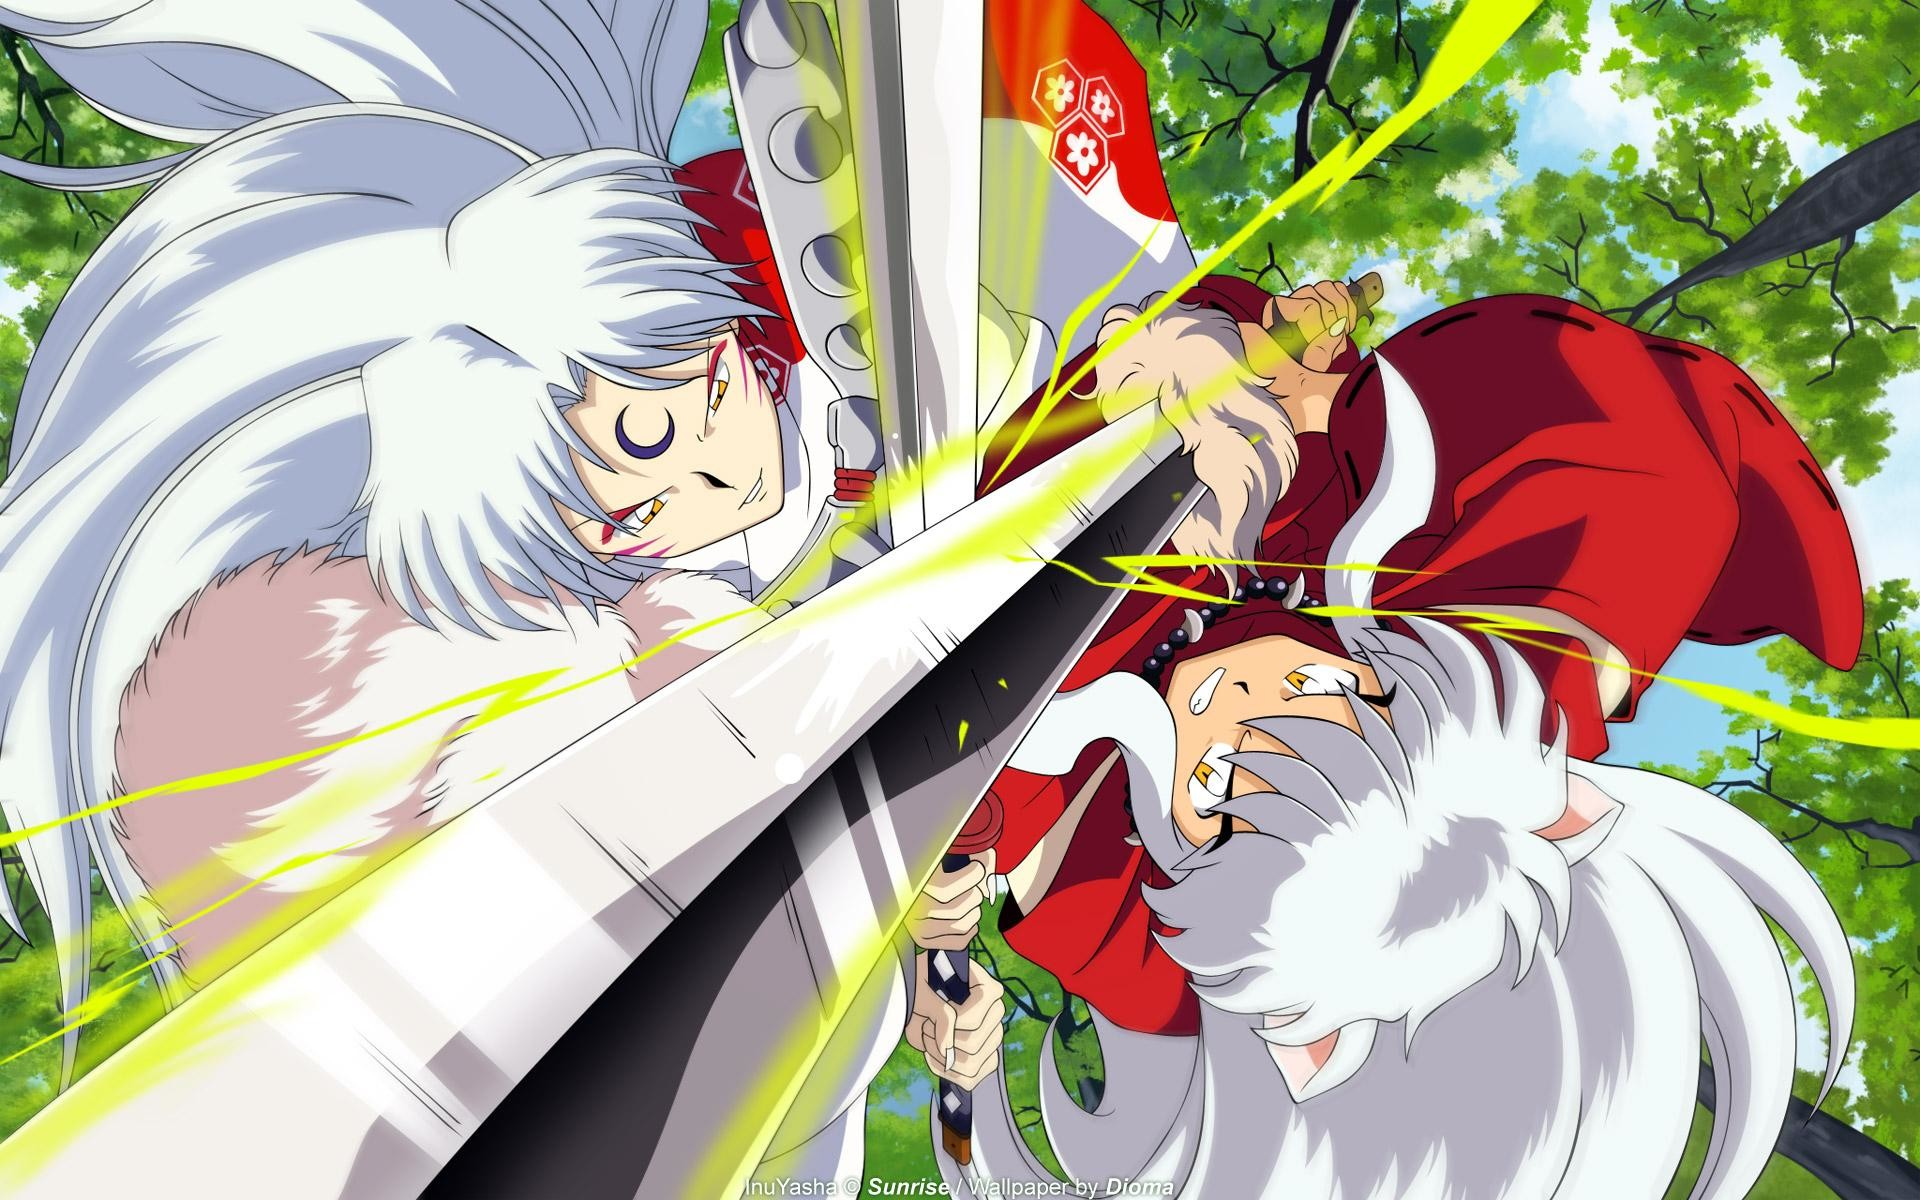 1920x1200 InuYasha HD Wallpaper | Hintergrund |  | ID:227930 - Wallpaper  Abyss